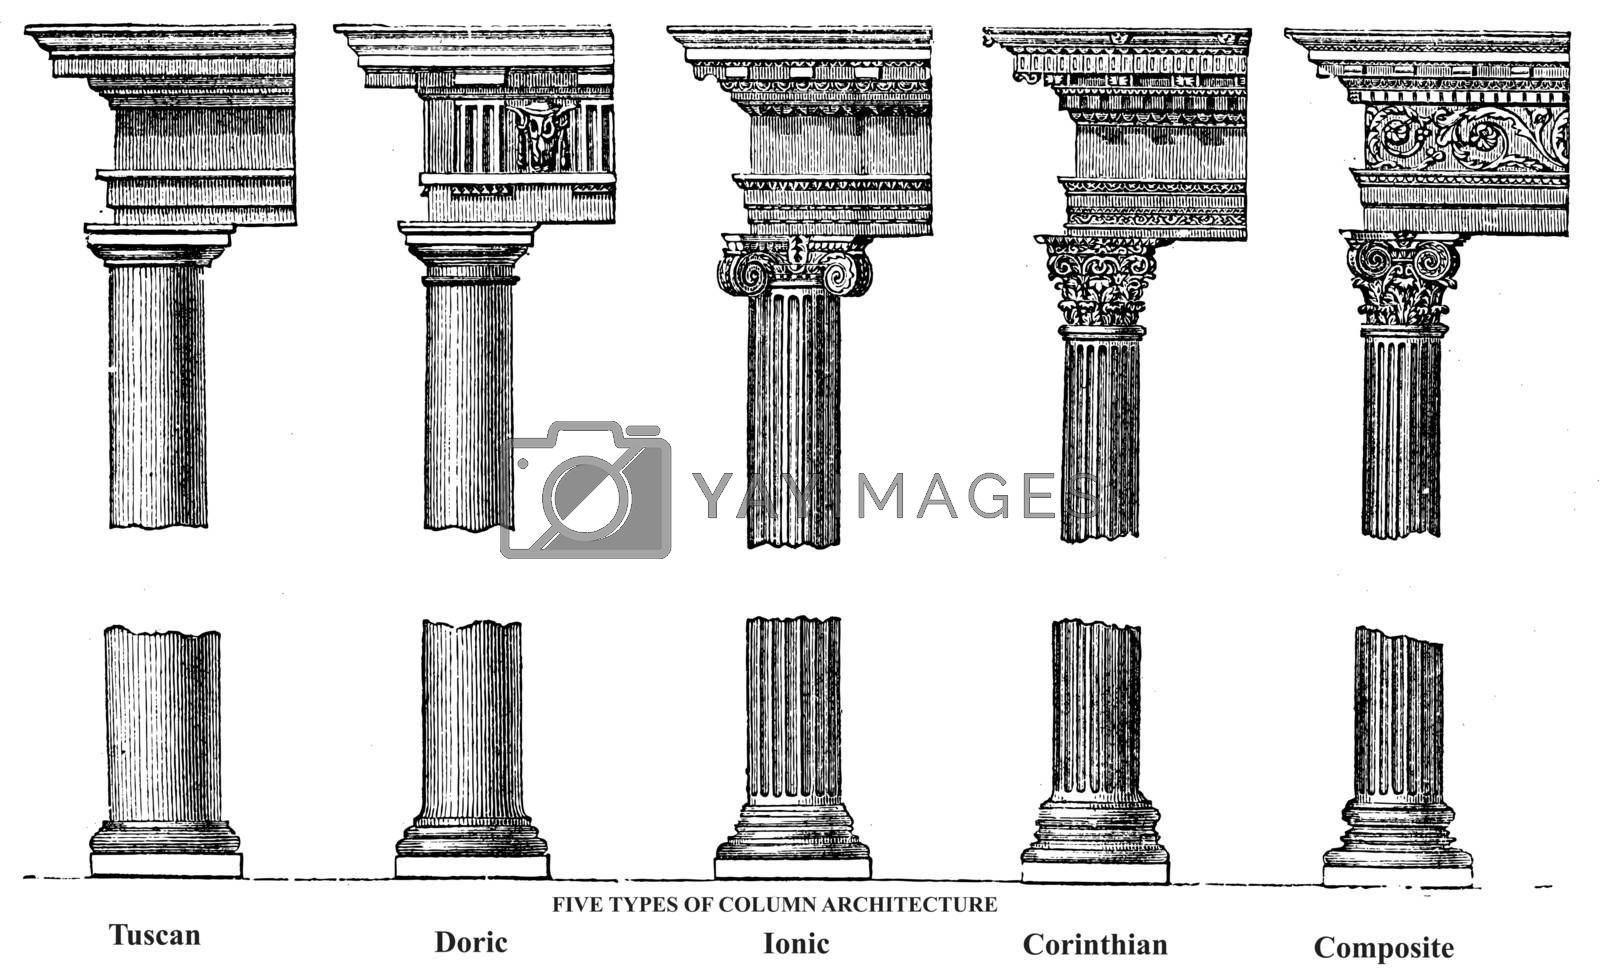 Five types of old column architecture old engraving. Vector, engraved illustration showing a Tuscan, Doric, Ionic, Corinthian and Composite Greek and Roman column